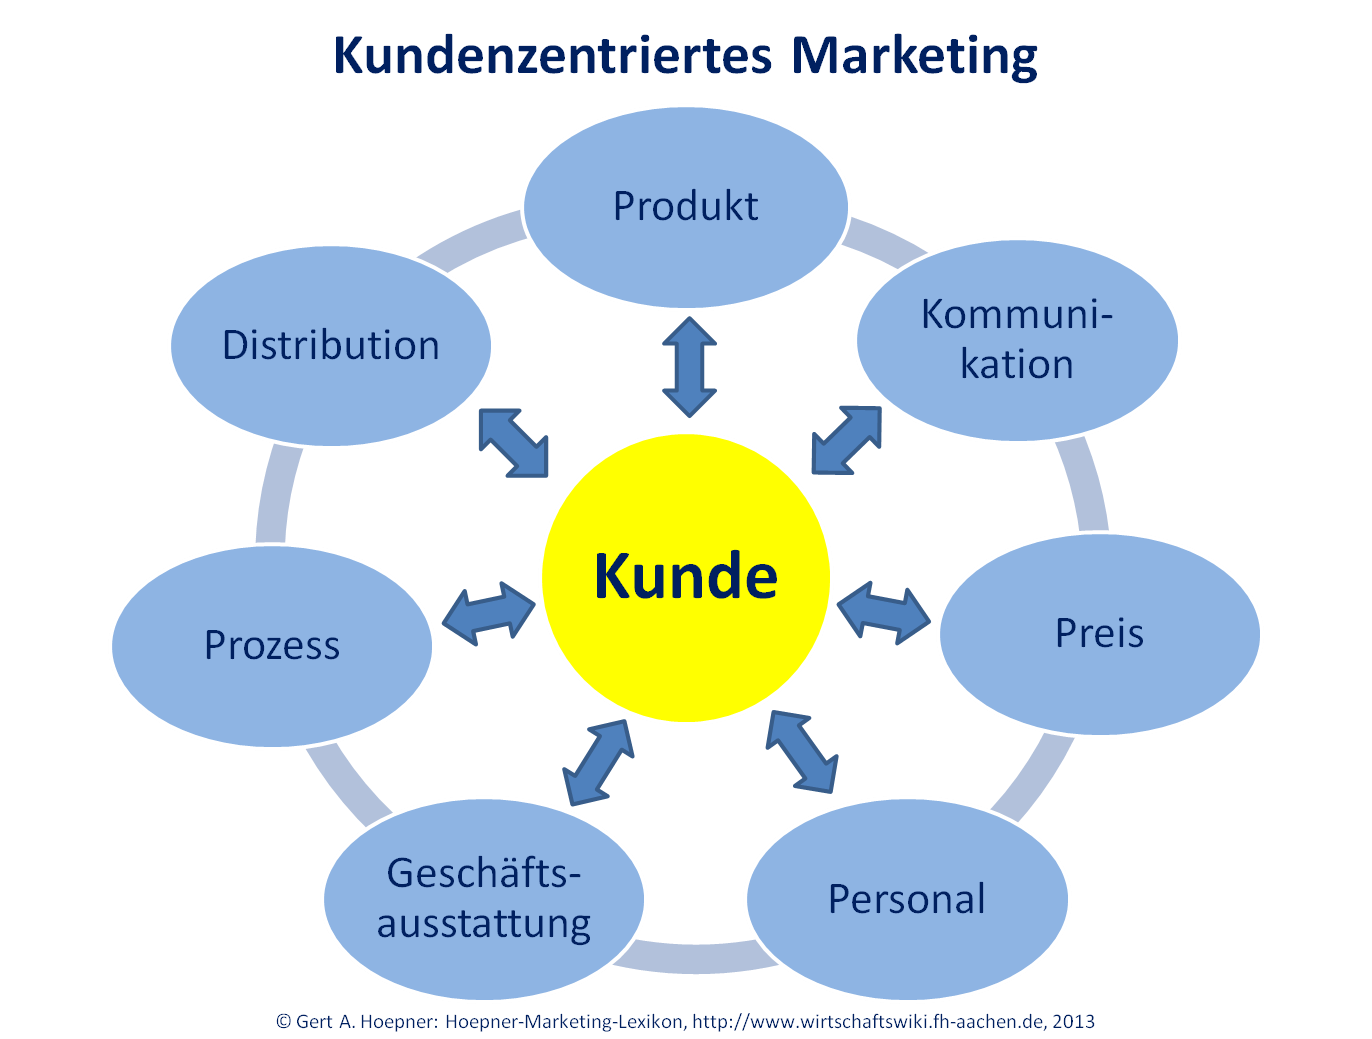 File Customer Centric Marketing – WirtschaftsWiki image #1304